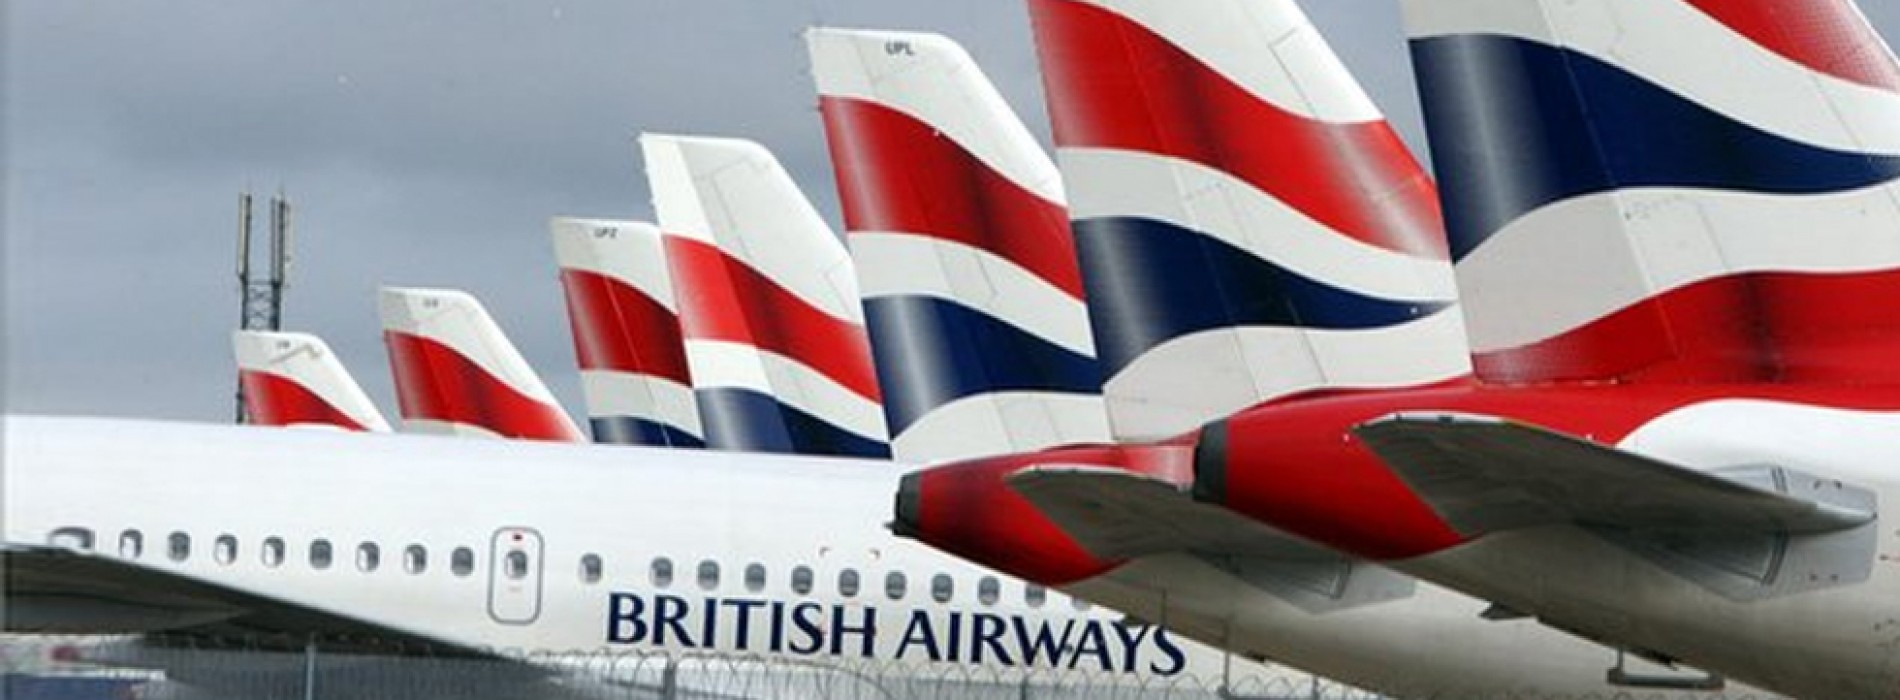 British Airways cabin crew to strike over pay dispute